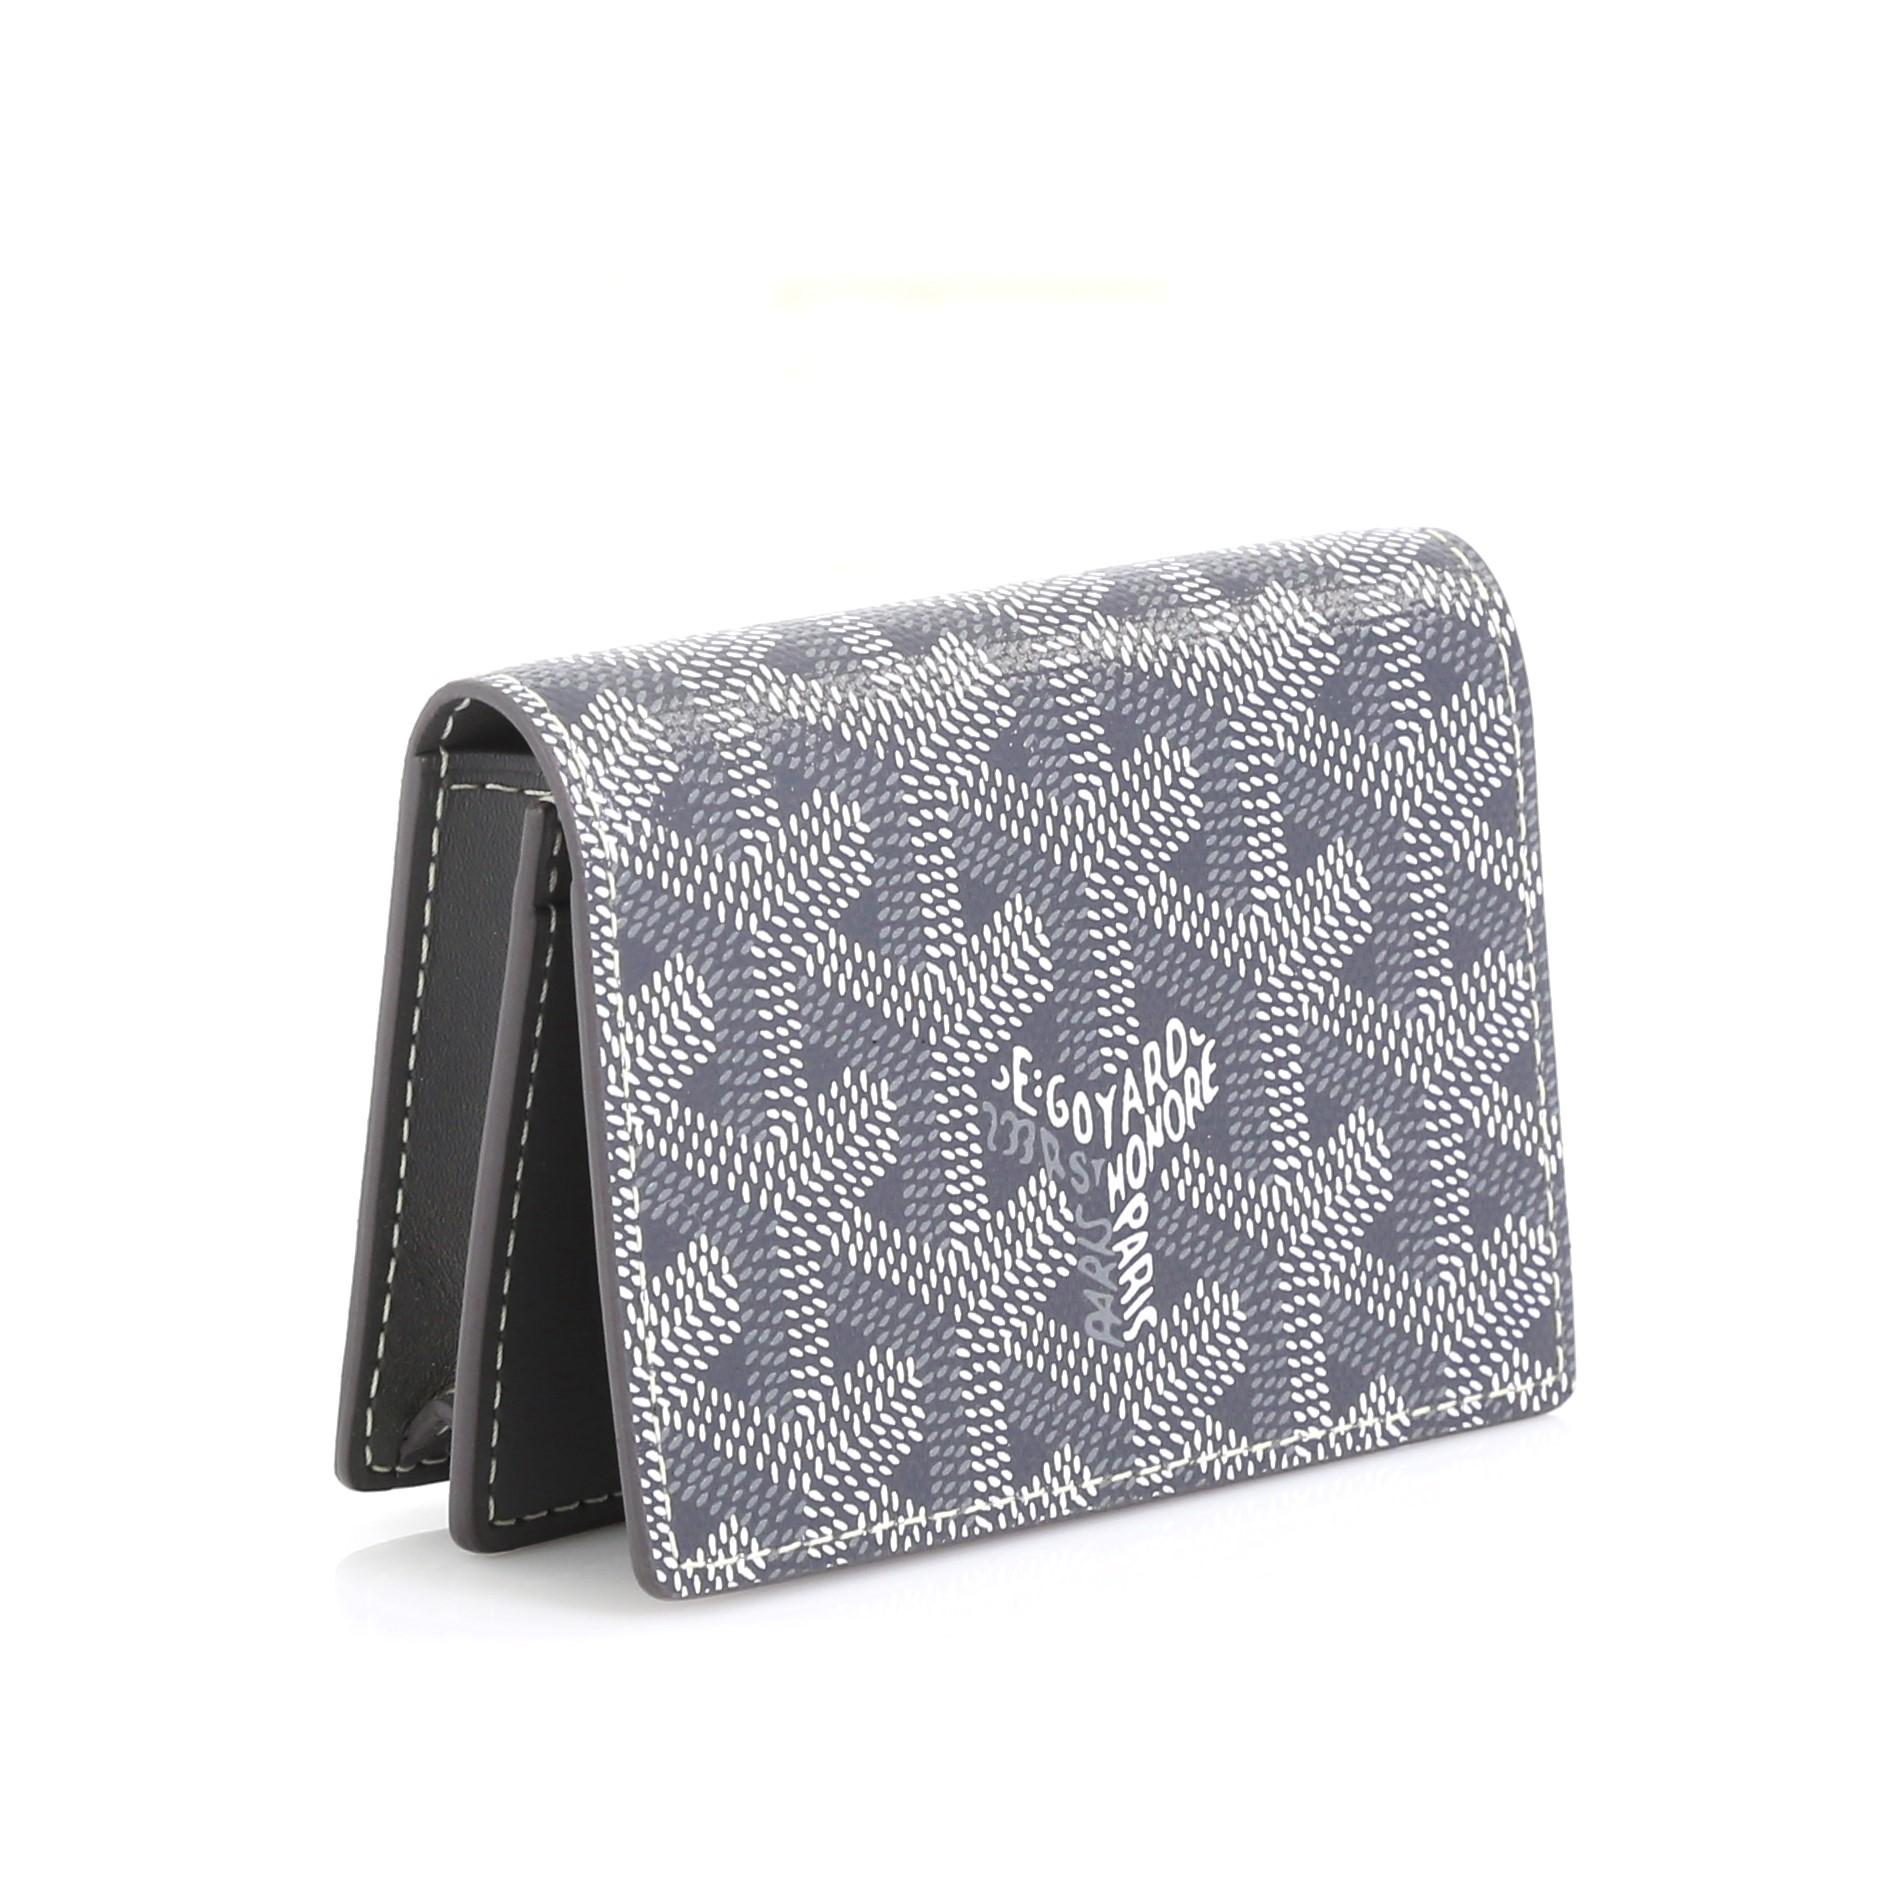 Goyard Business Card Holder Coated Canvas